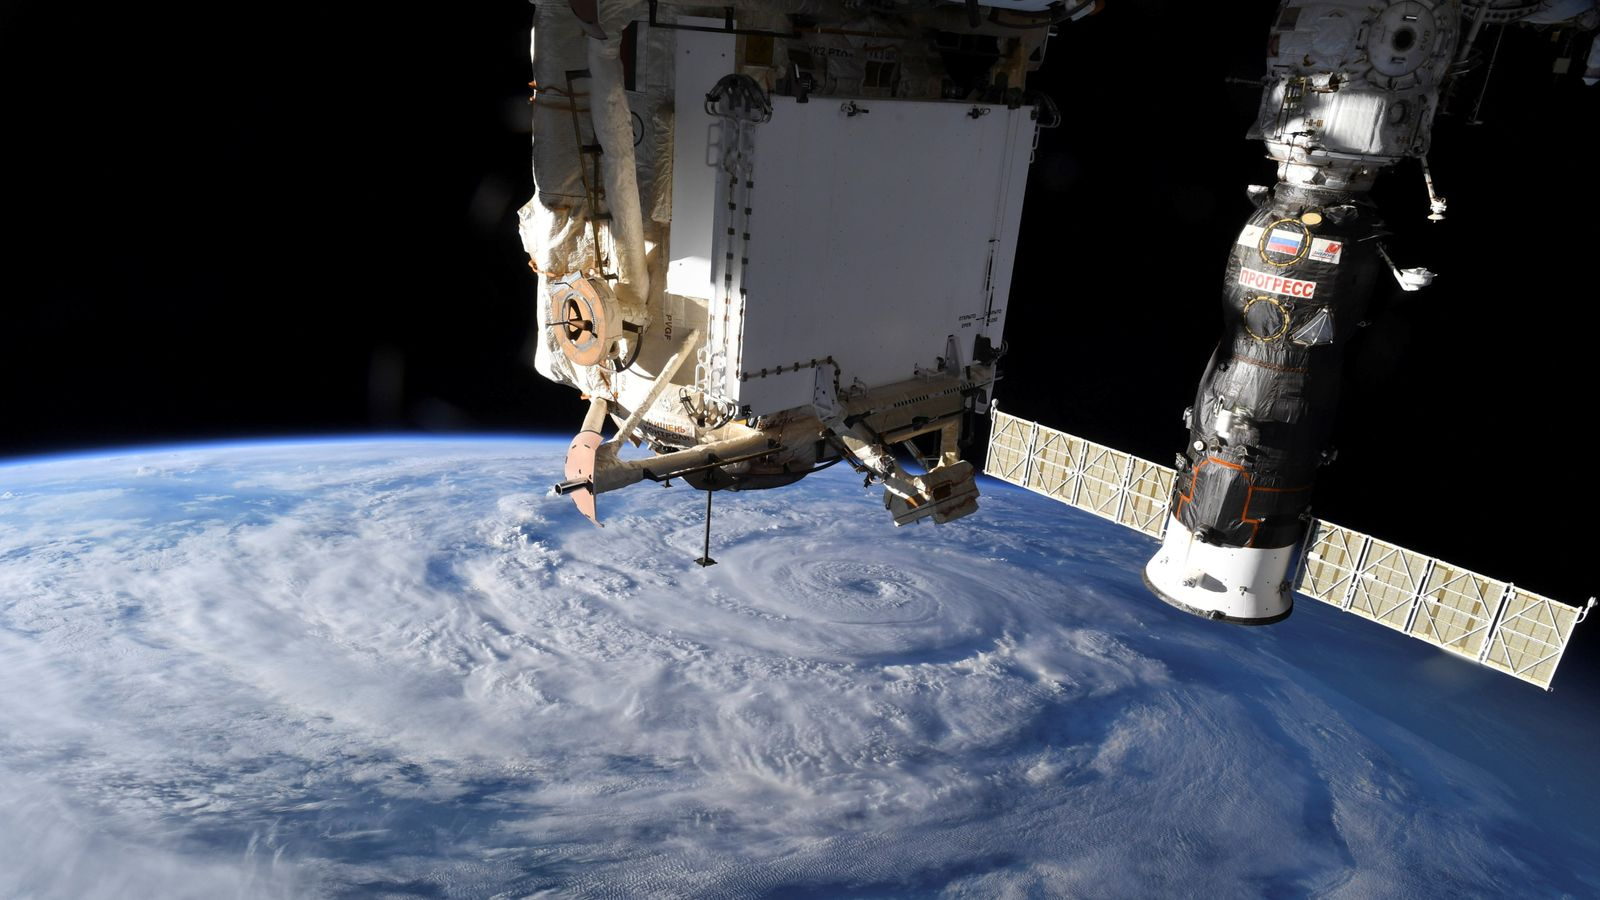 Smoke alarm activated onboard Russian module on the International Space Station